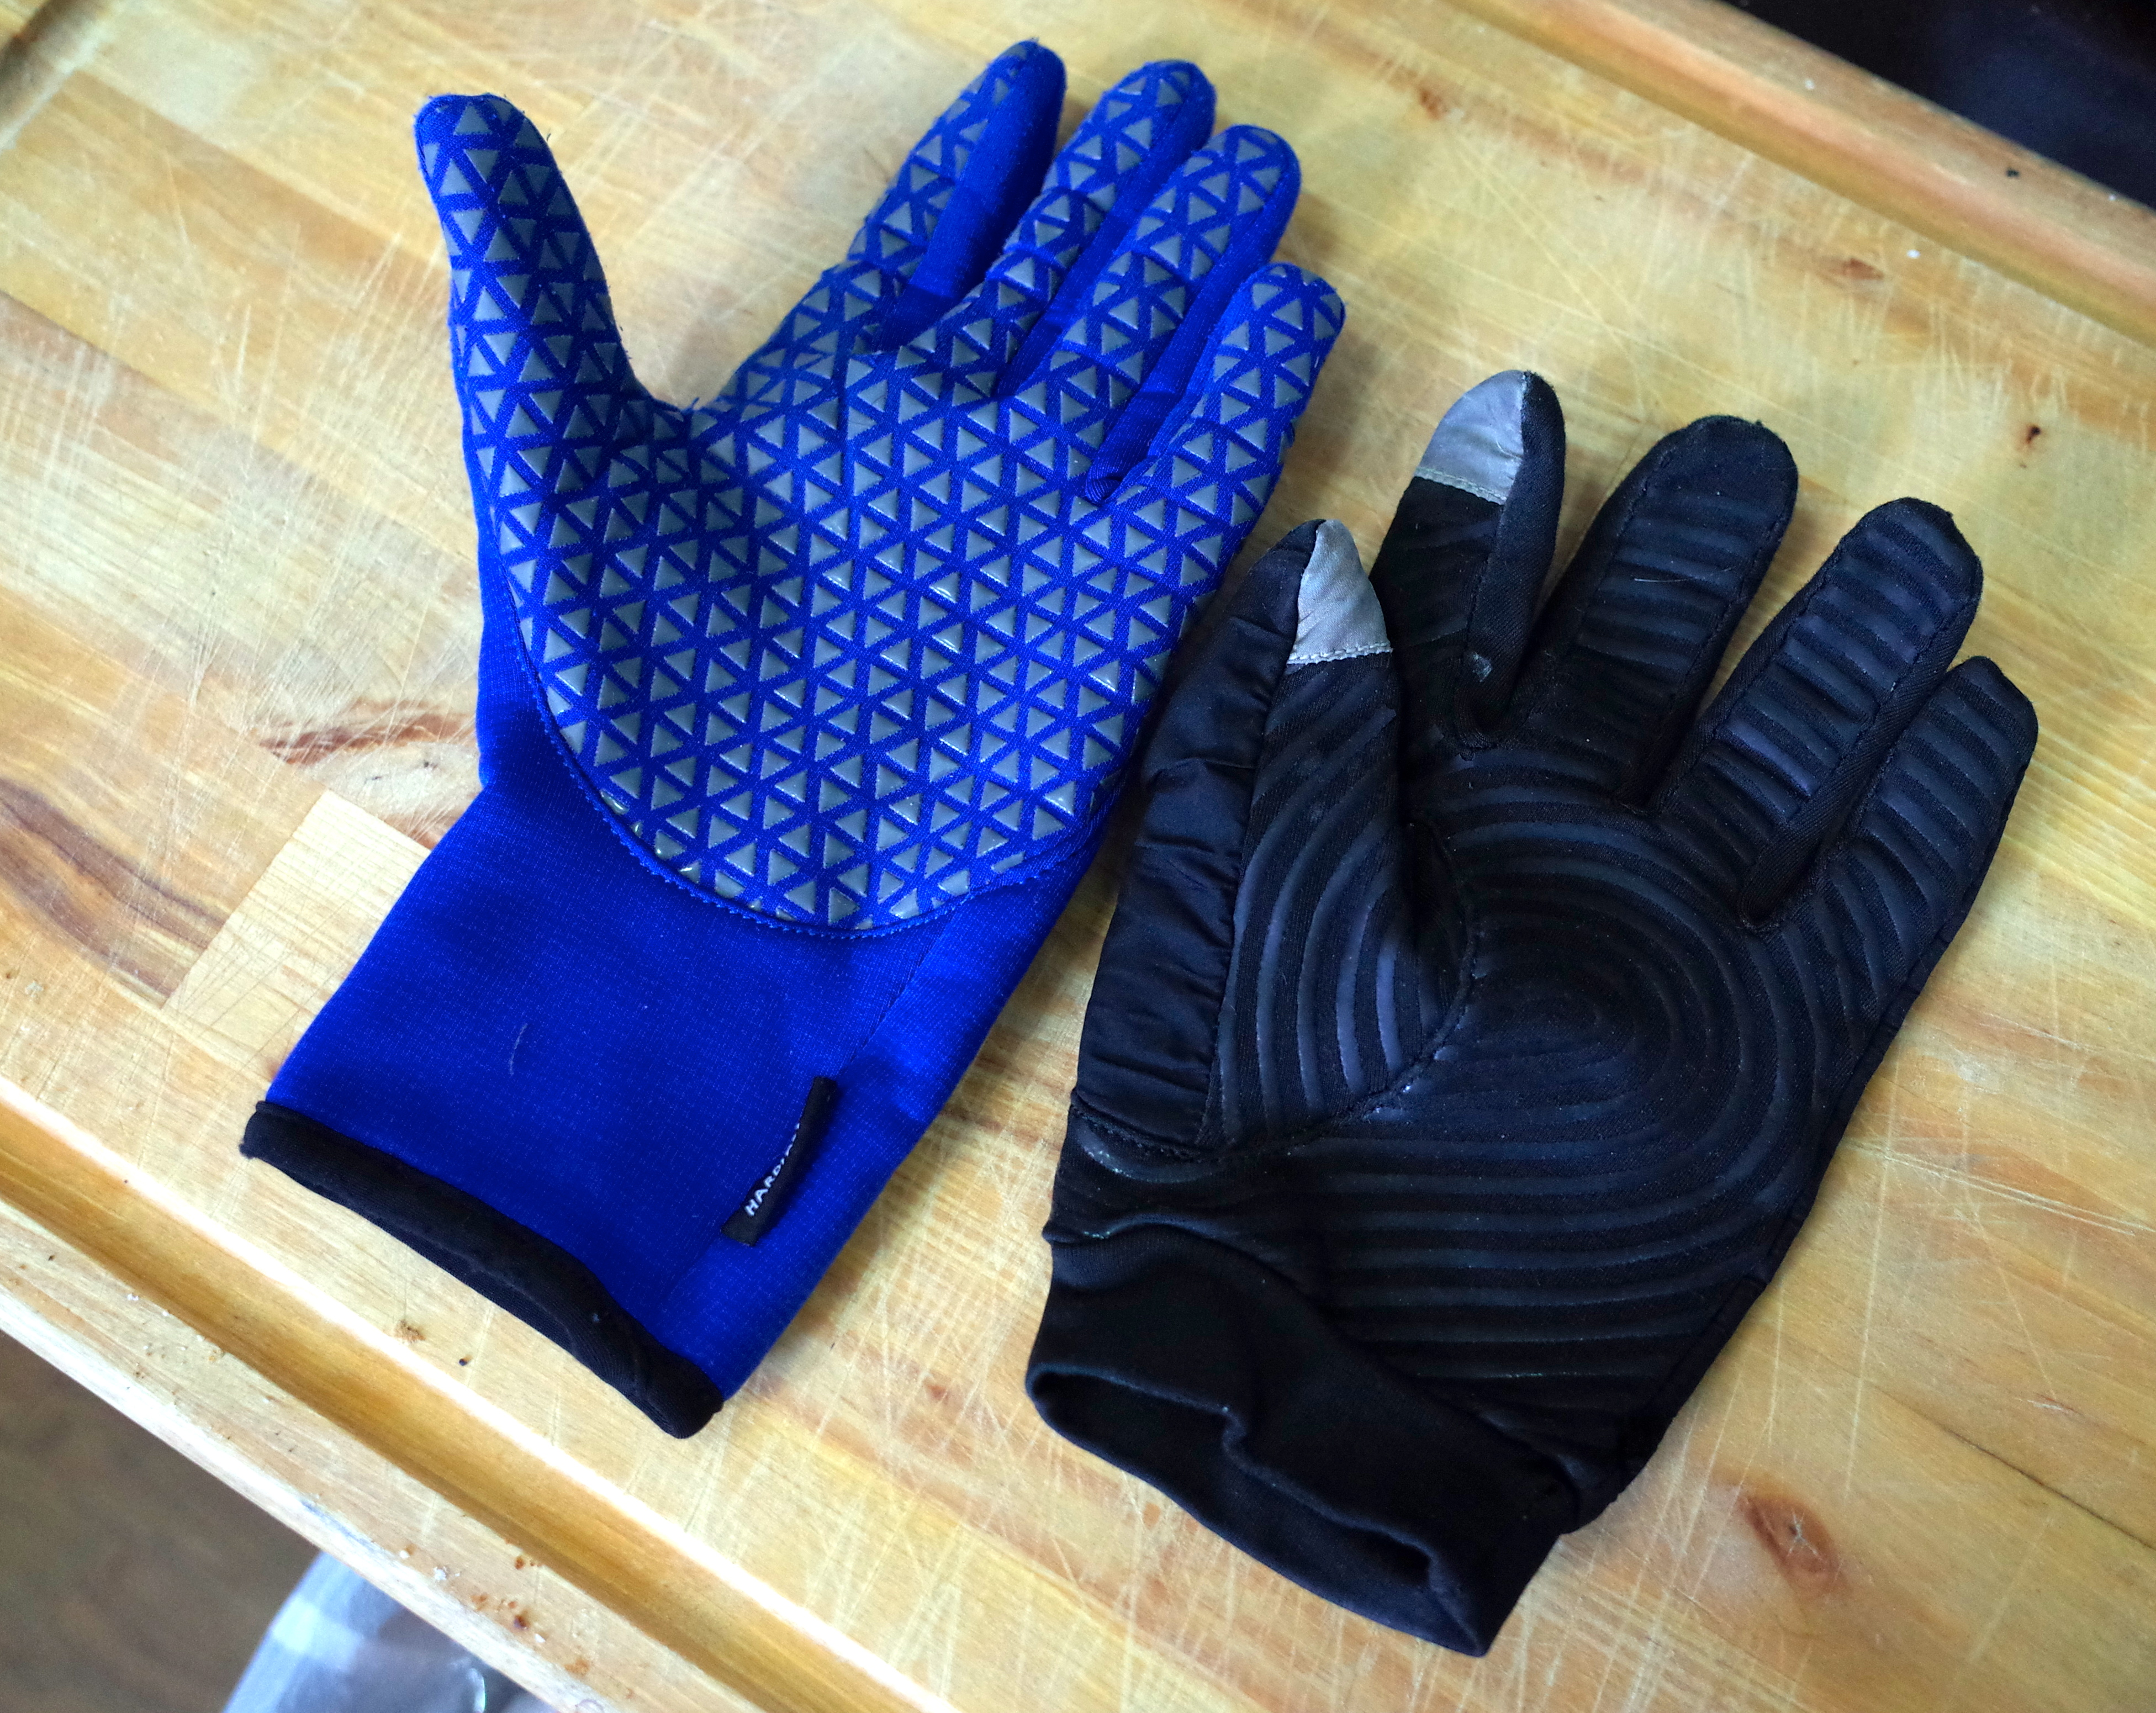 Black grip gloves - The Rab Phantom Grip Is At Left The Black Diamond Mont Blanc At Right The Gloves Pictured Are Both Men S Medium